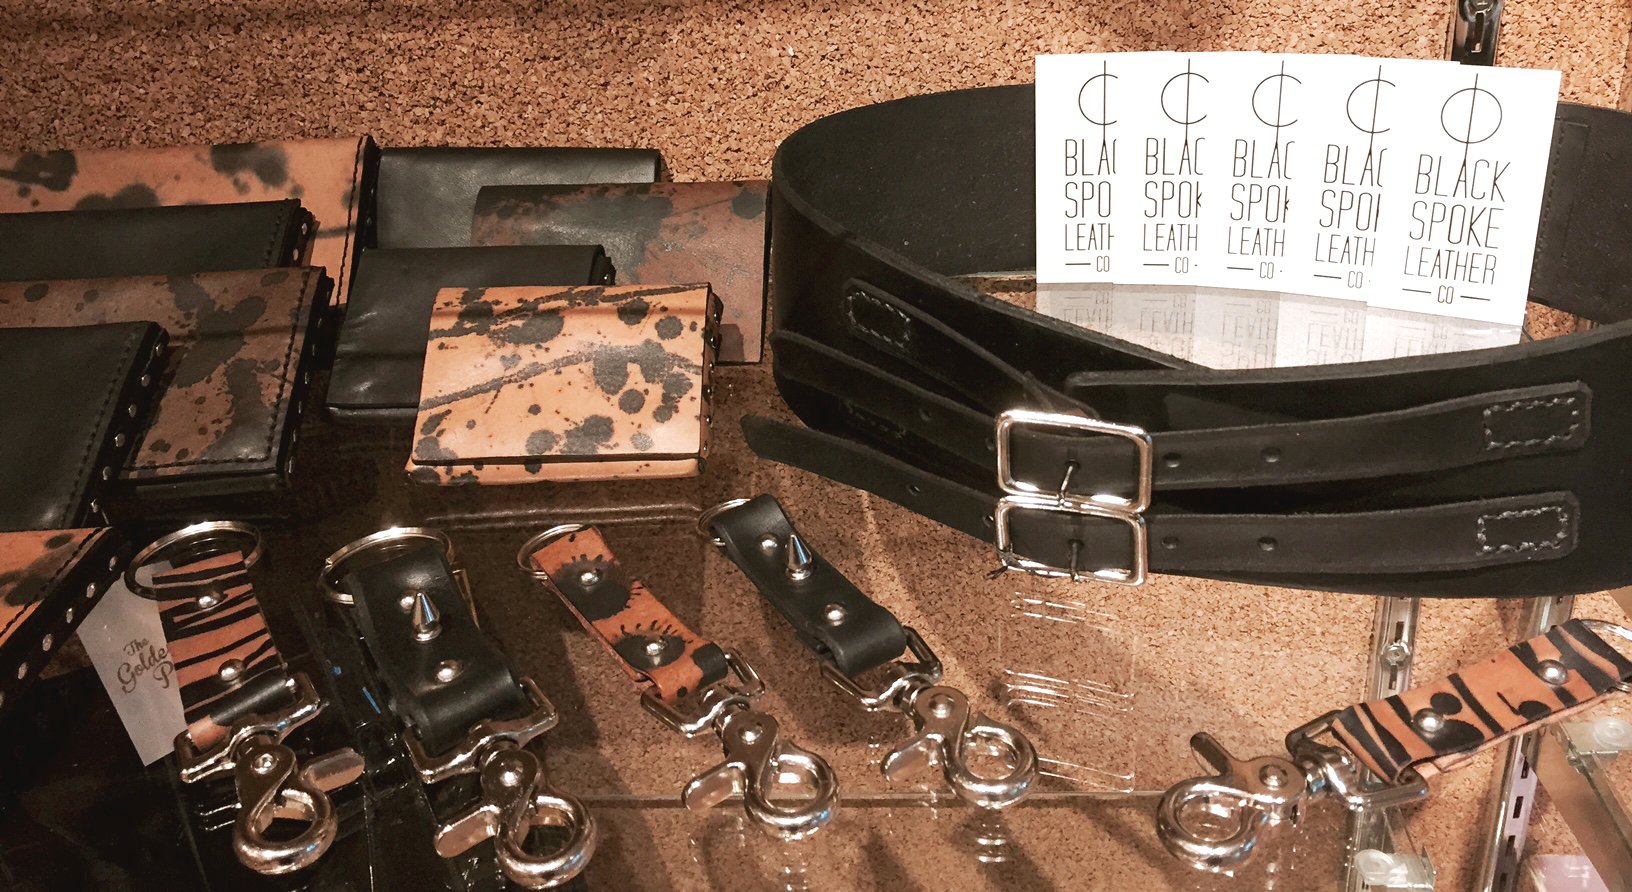 Display of Black Spoke Leather Co. goods at The Golden Pearl Vintage